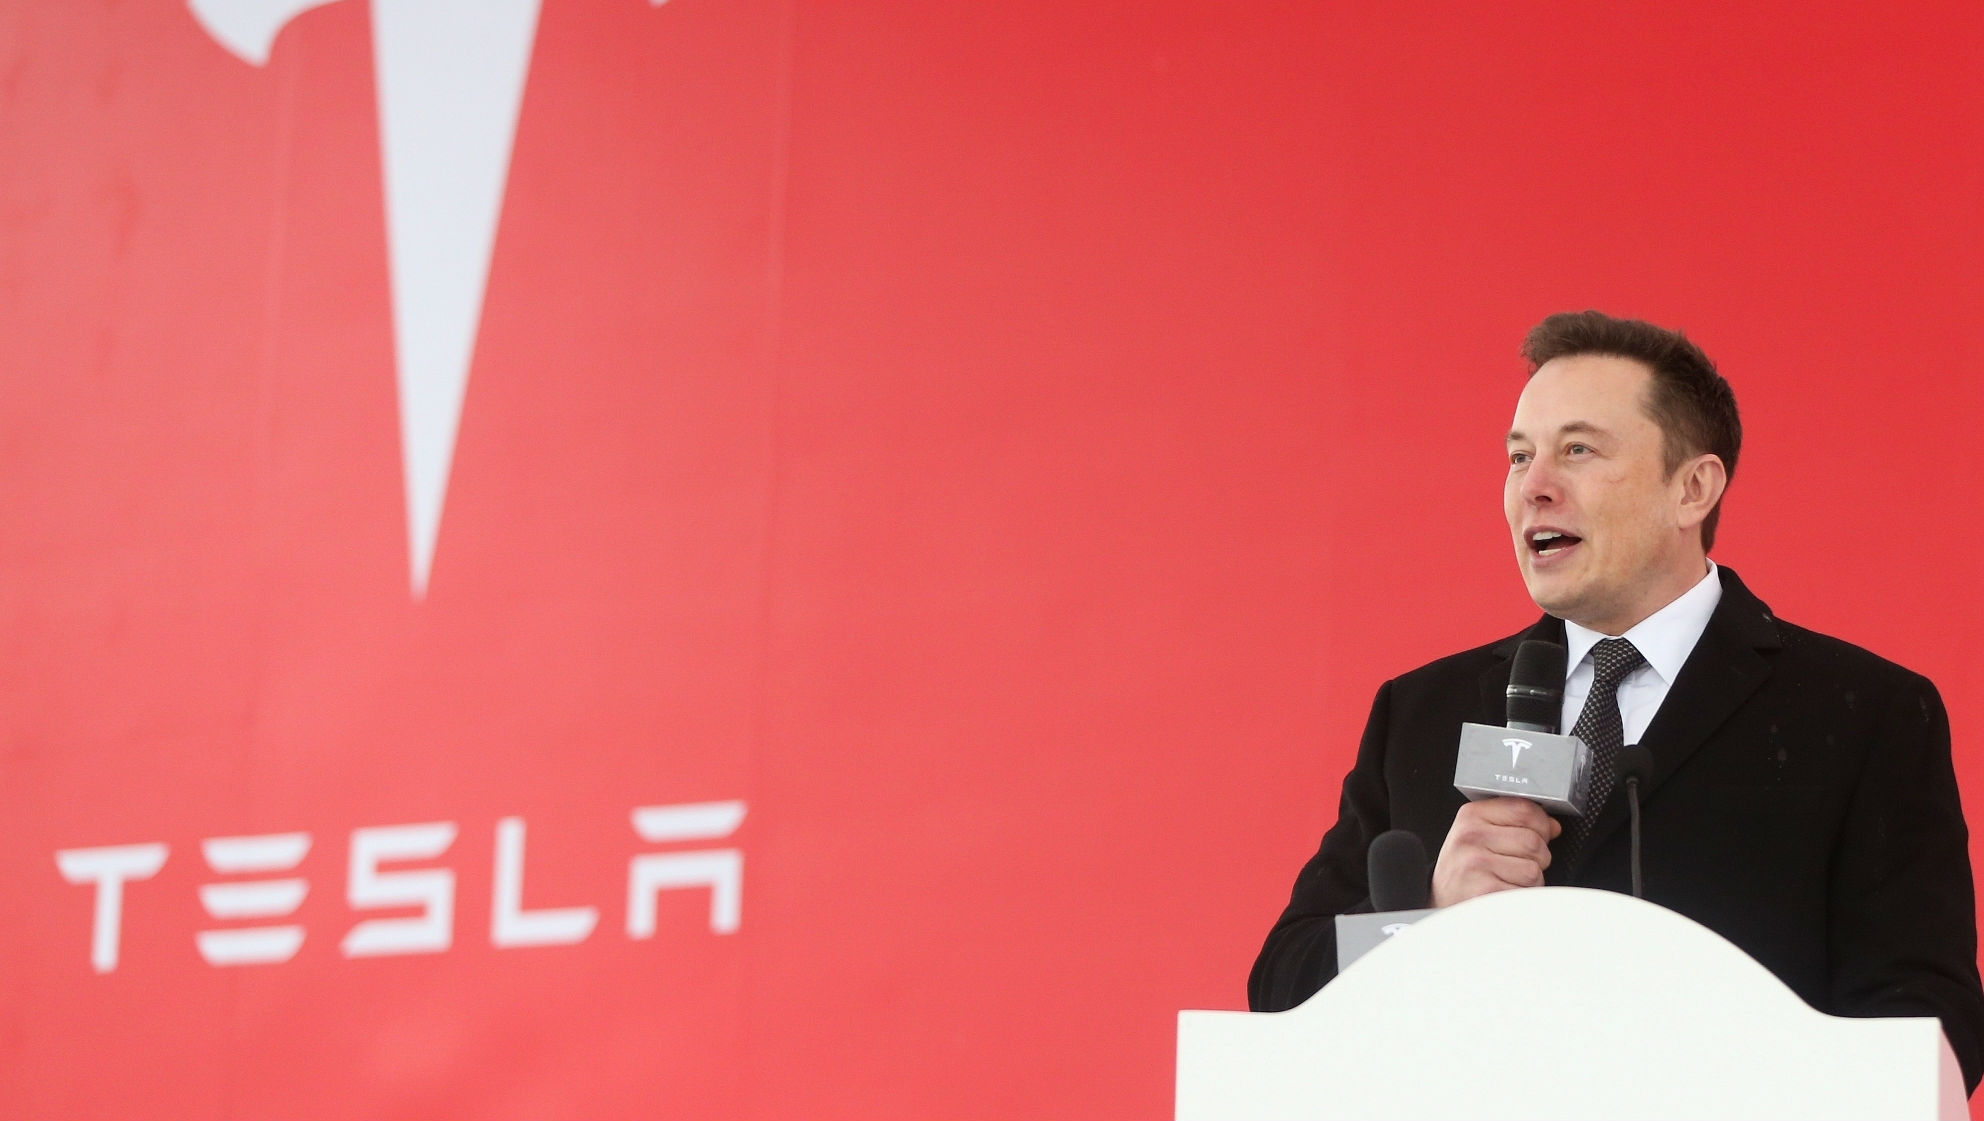 Tesla Employees' Salaries to be Cut by Up To 30% to Curb Costs Amid COVID-19 Pandemic